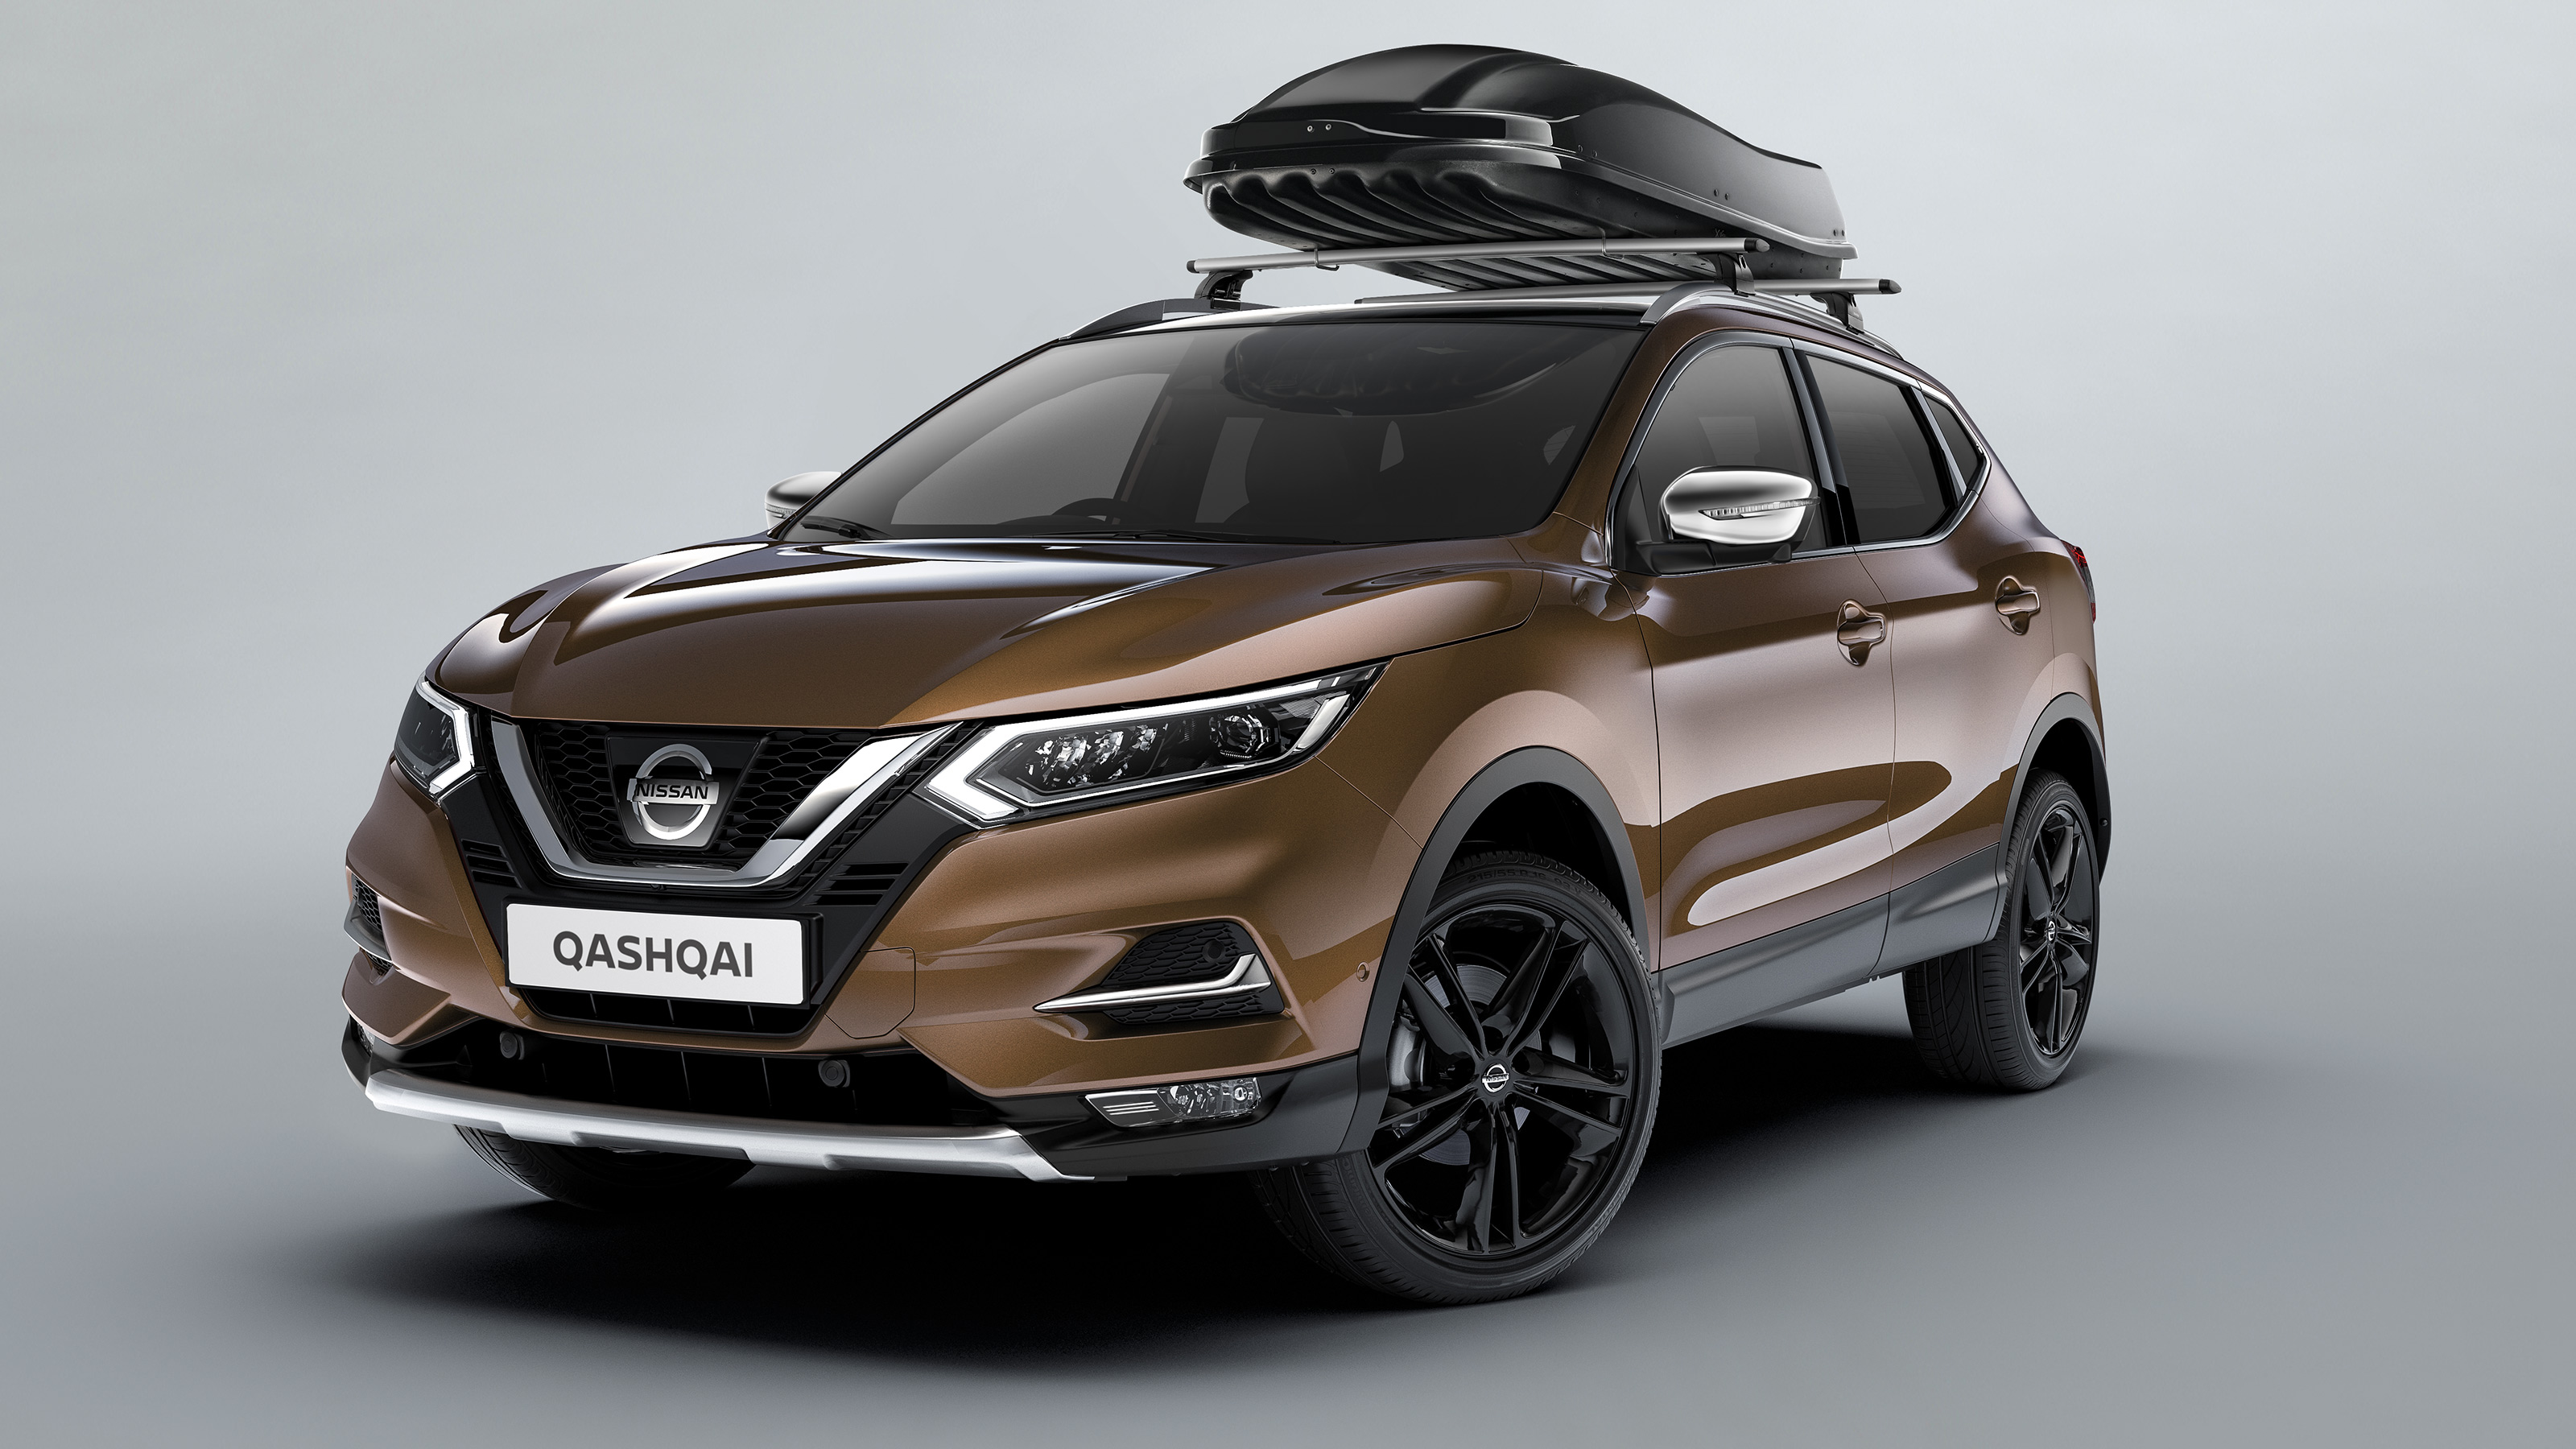 Nissan Qashqai with roofbox